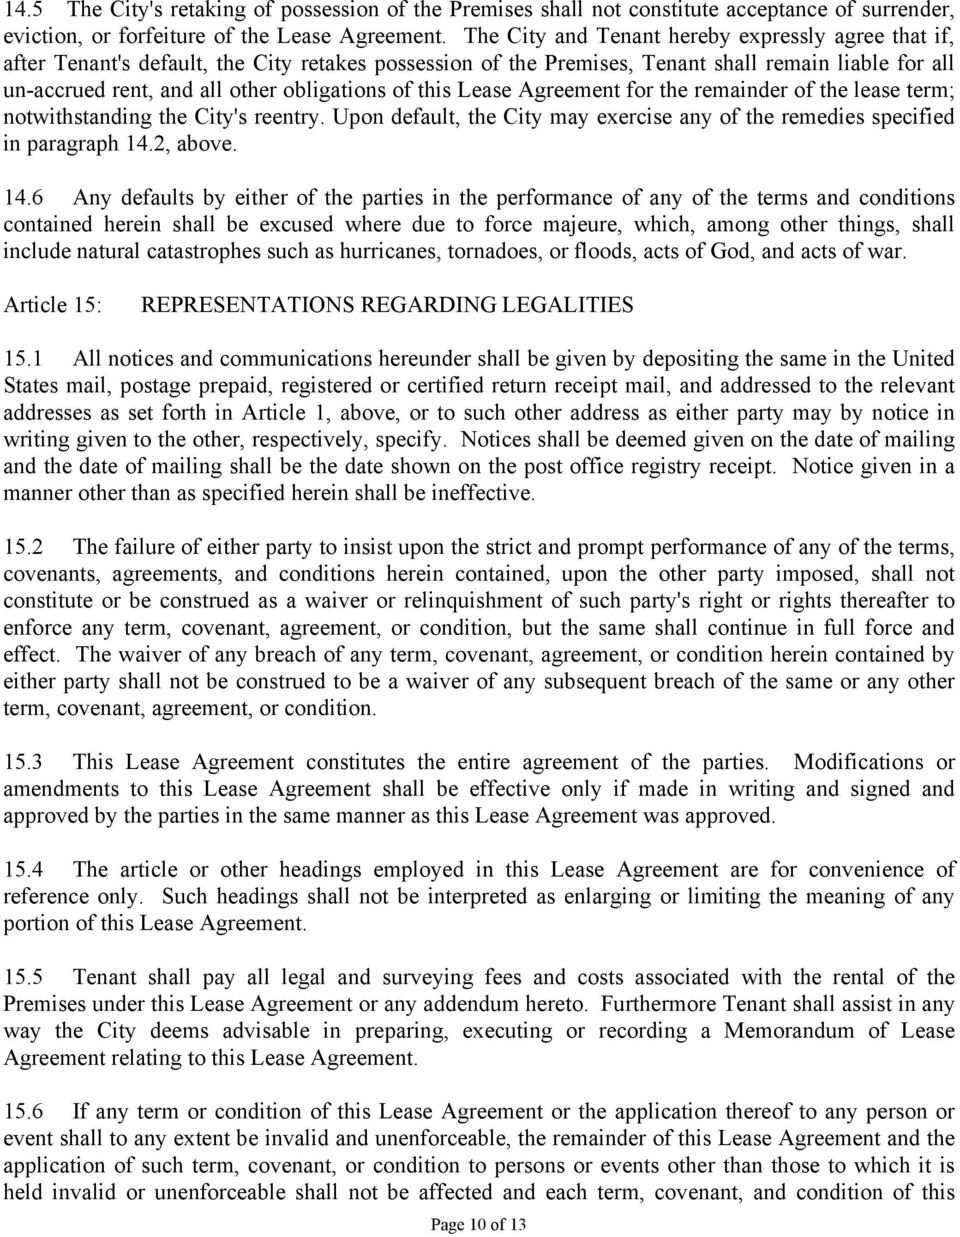 of this Lease Agreement for the remainder of the lease term; notwithstanding the City's reentry. Upon default, the City may exercise any of the remedies specified in paragraph 14.